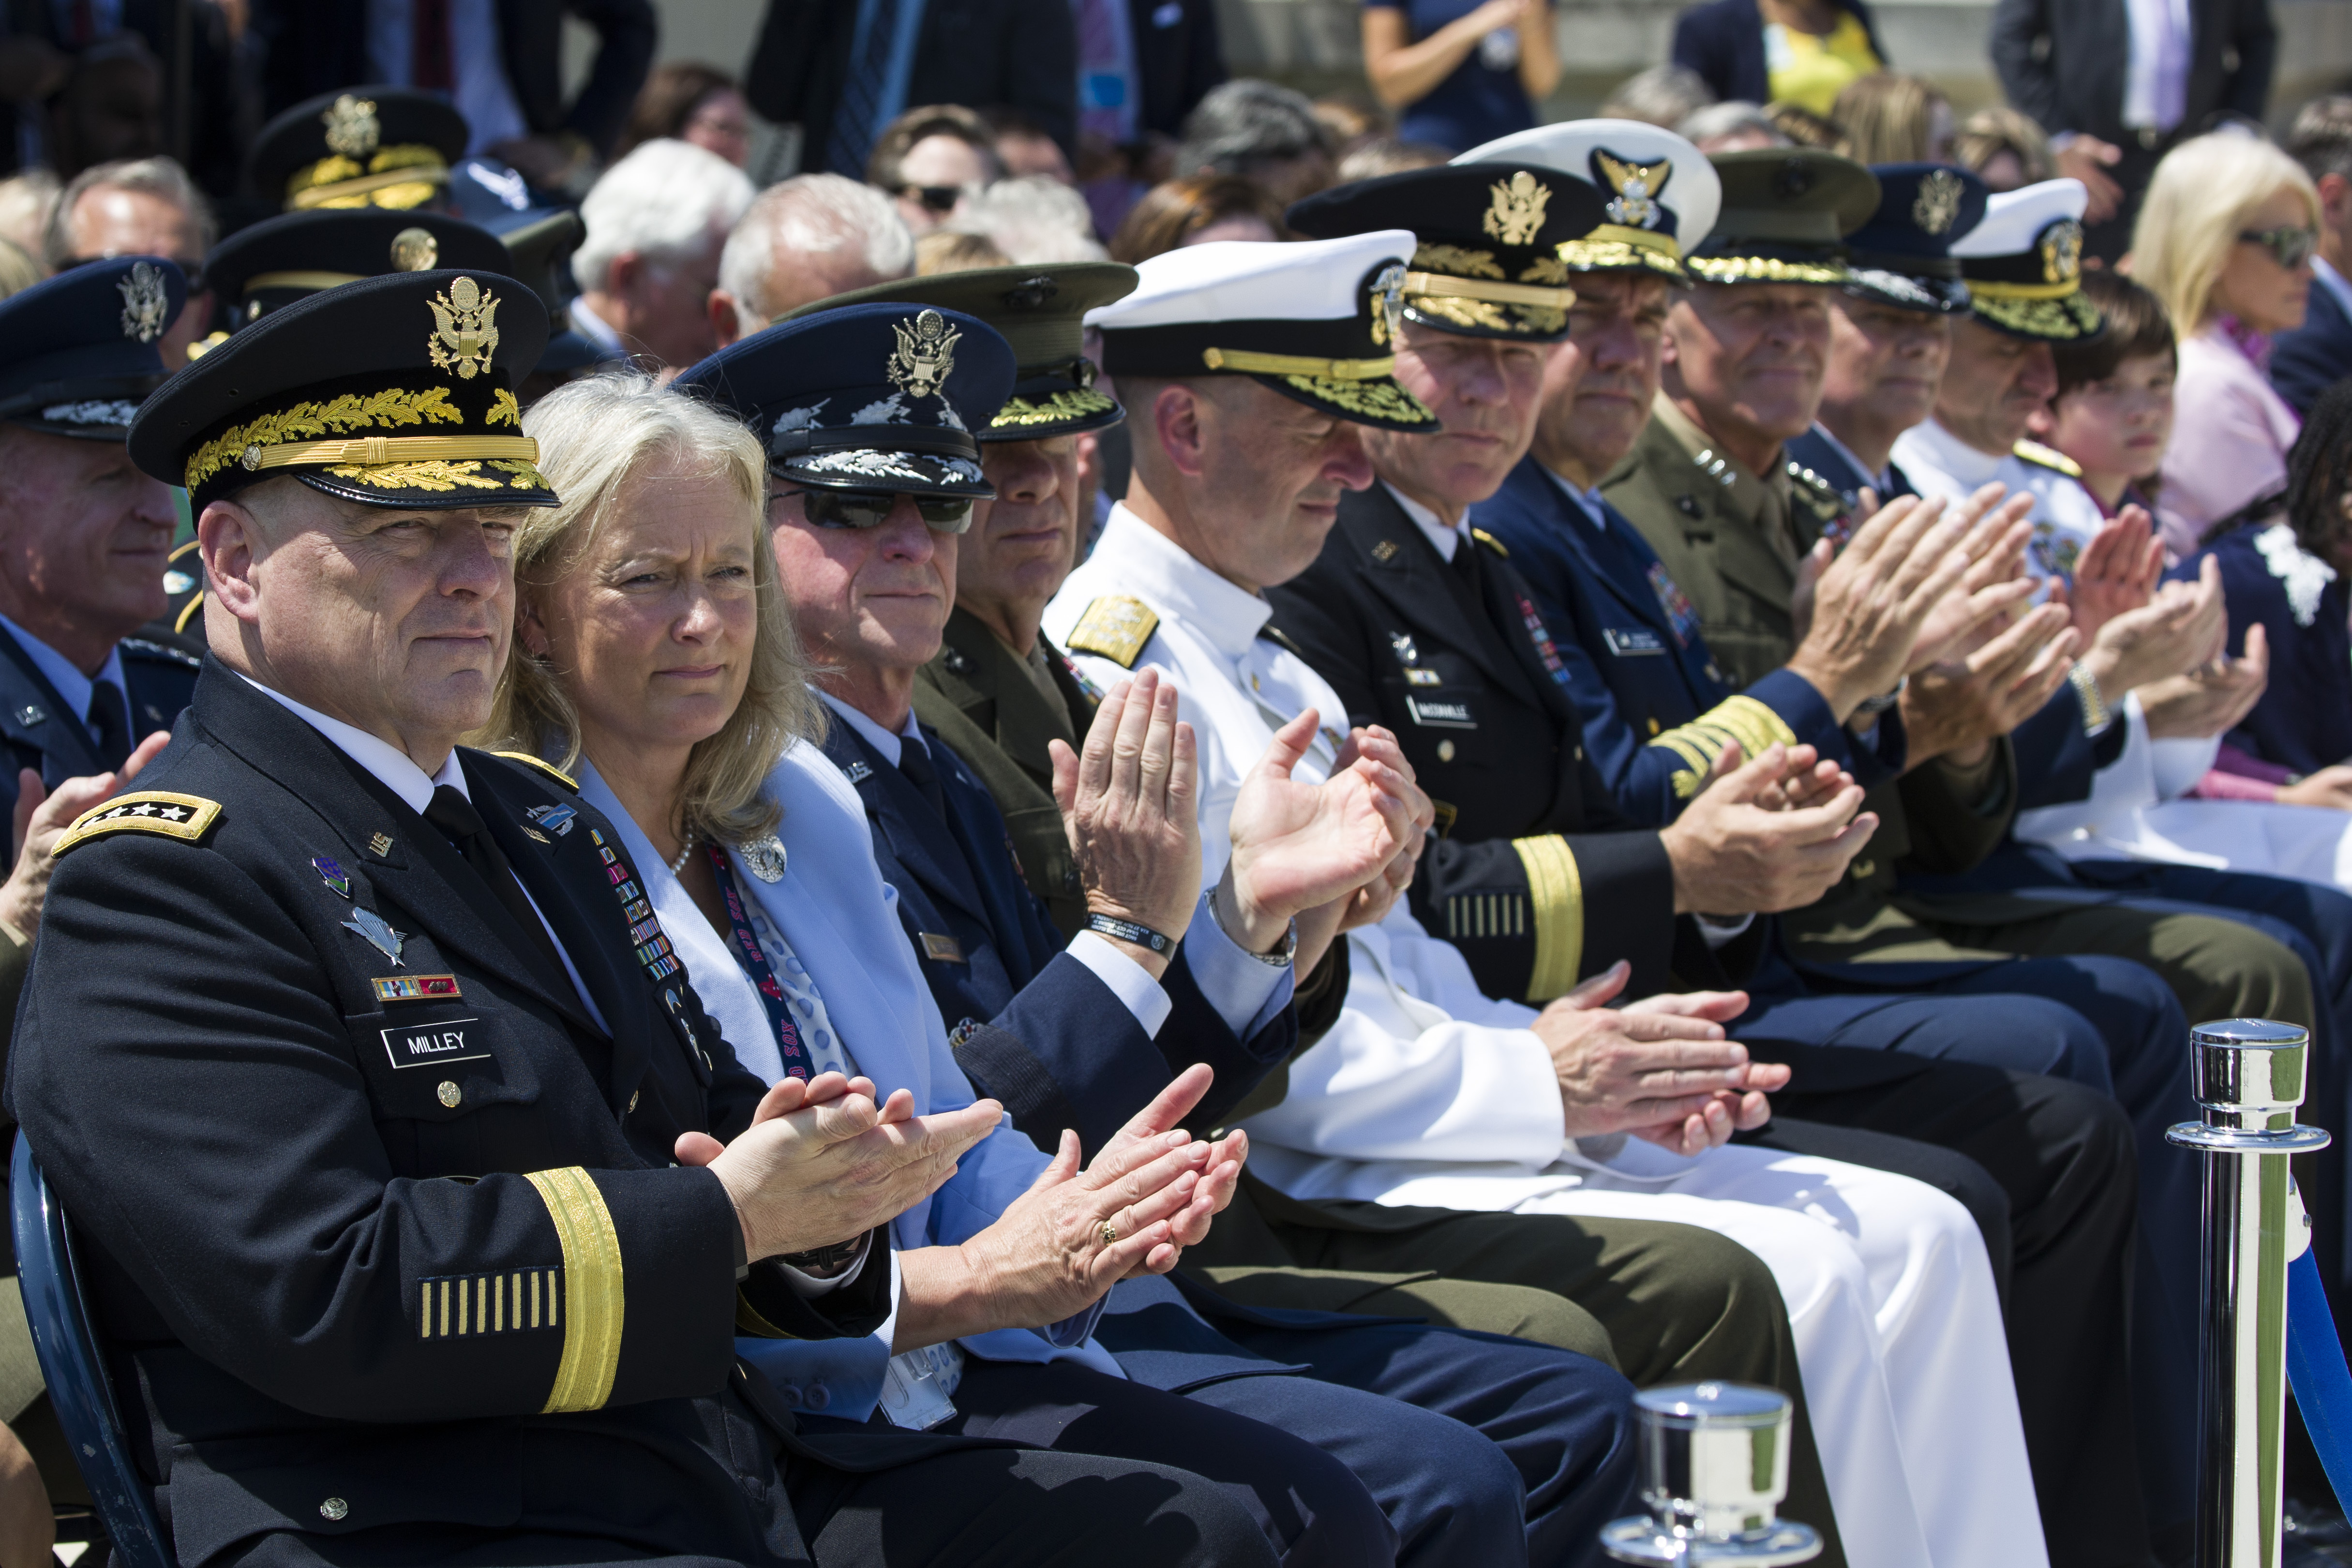 Senate confirms Army general as next Joint Chiefs chairman